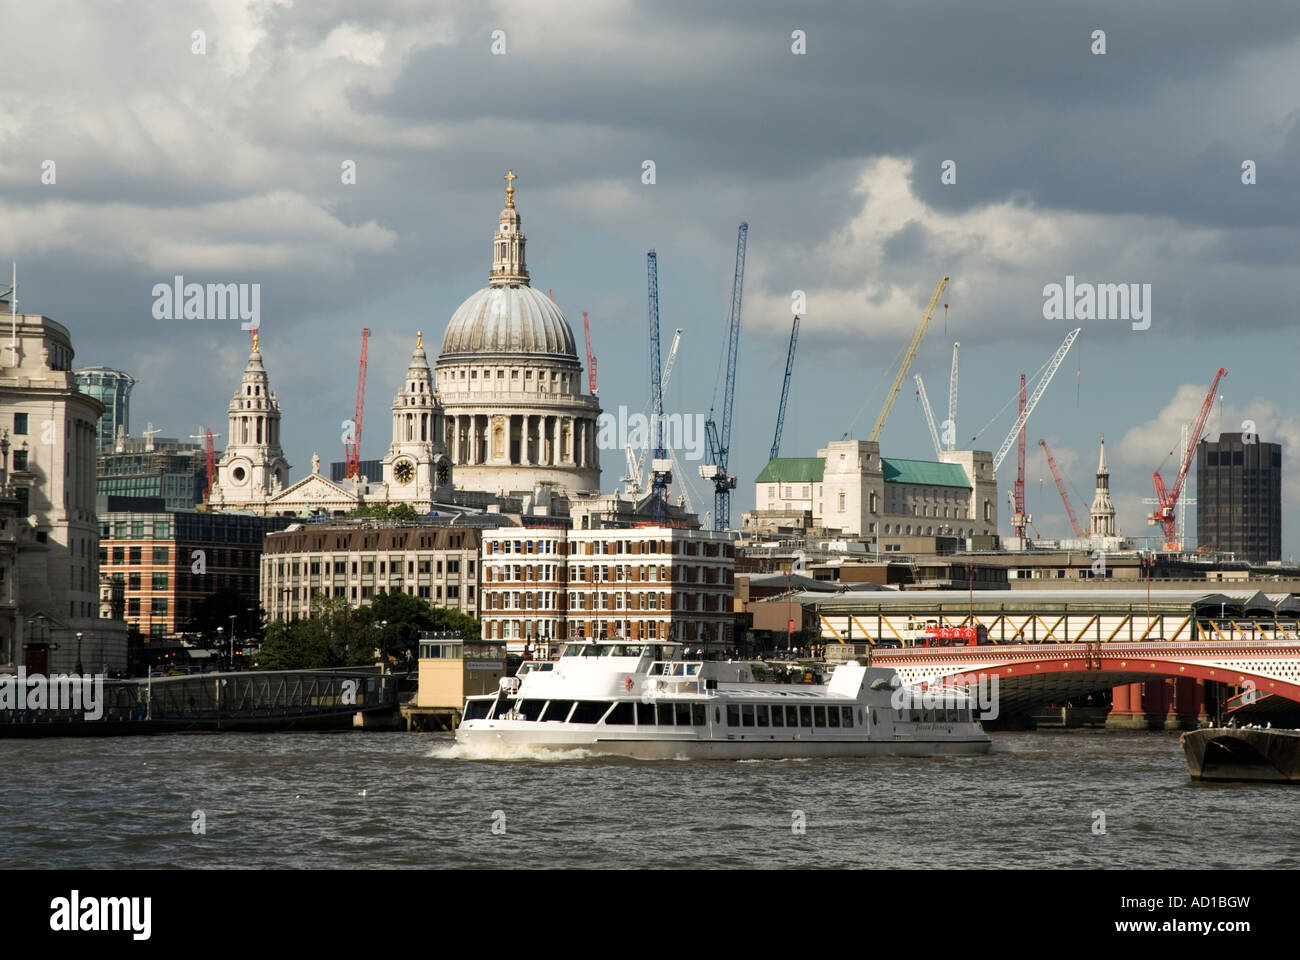 Construction cranes in the City of London England UK Stock Photo